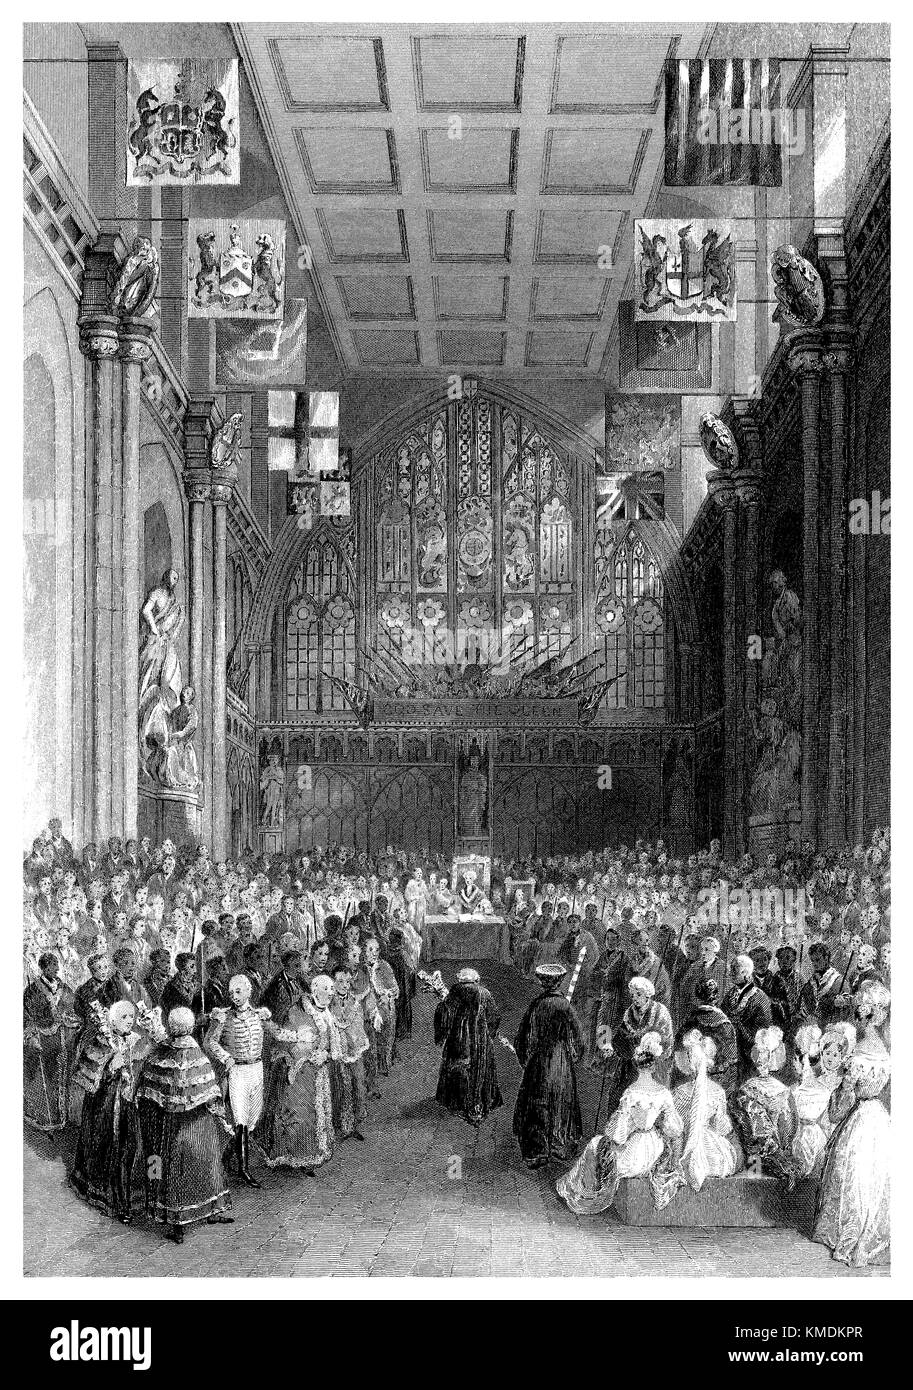 19th century steel engraving of the interior of Guildhall, London, during the inauguration of the Lord Mayor of - Stock Image